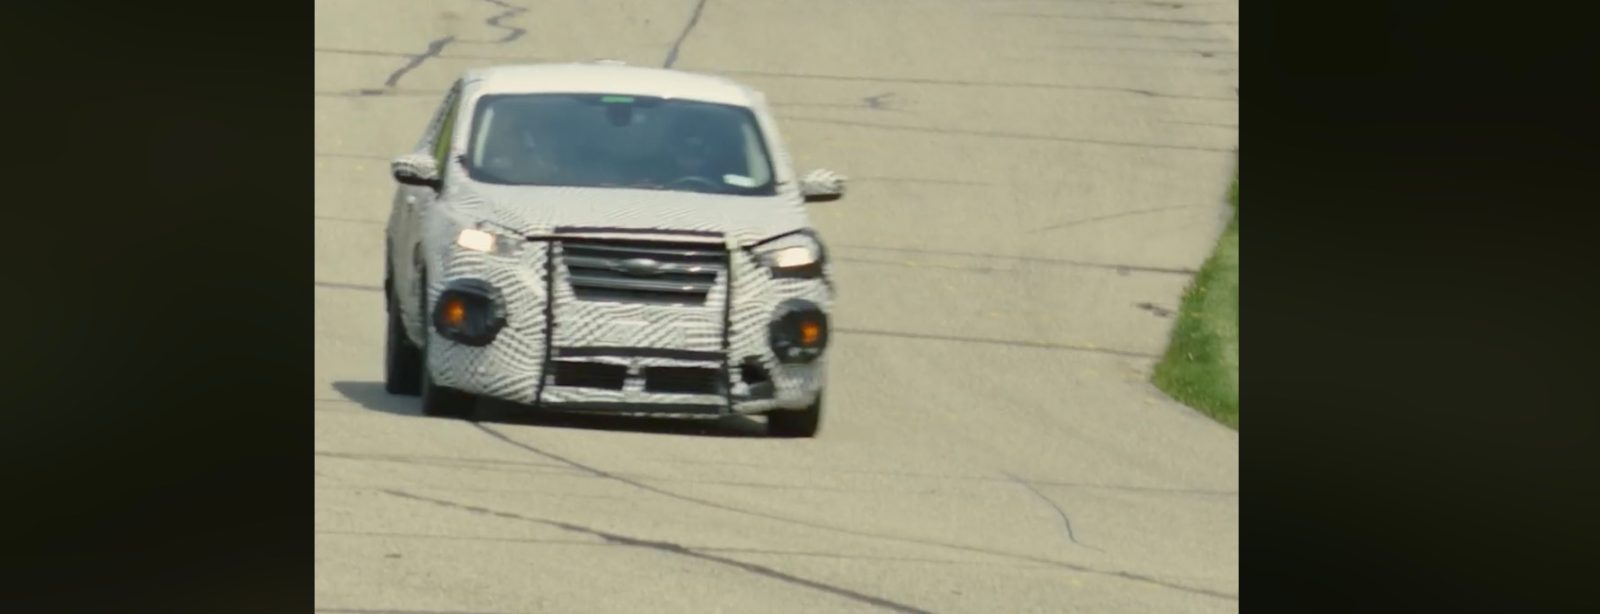 Ford shows Mustang-inspired electric car in testing video